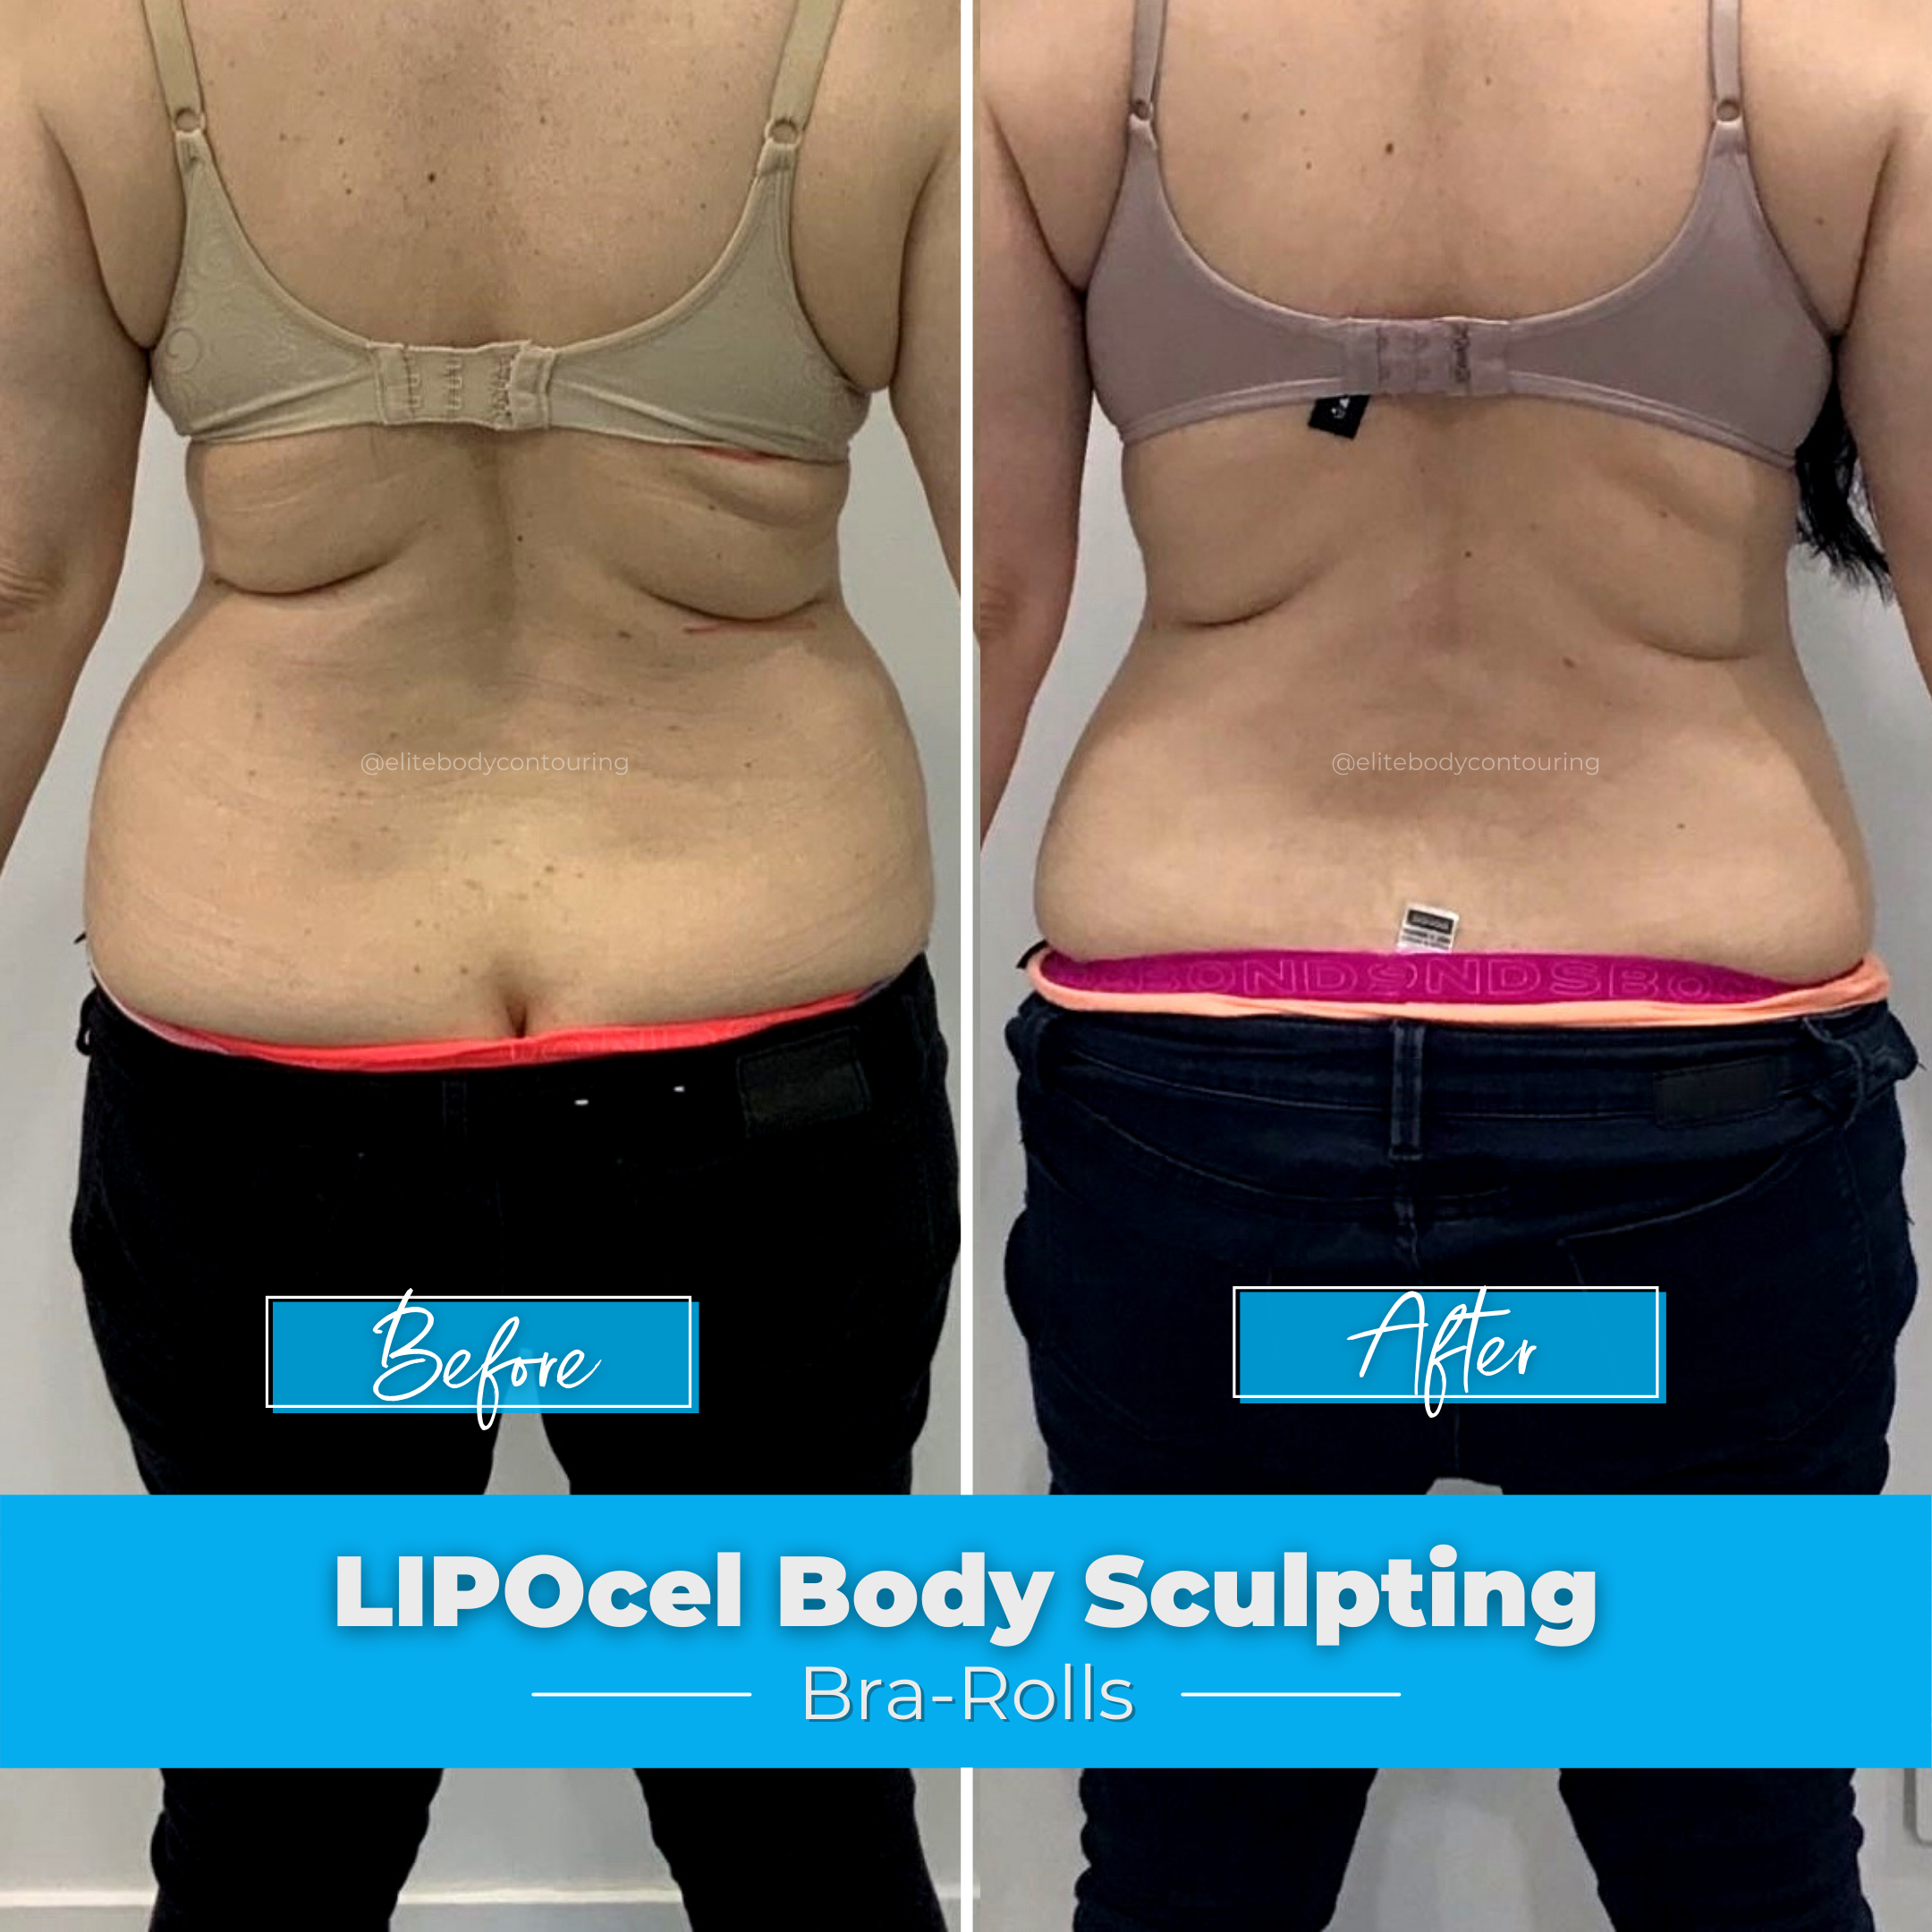 LIPOcel Body Sculpting - Bra-Rolls